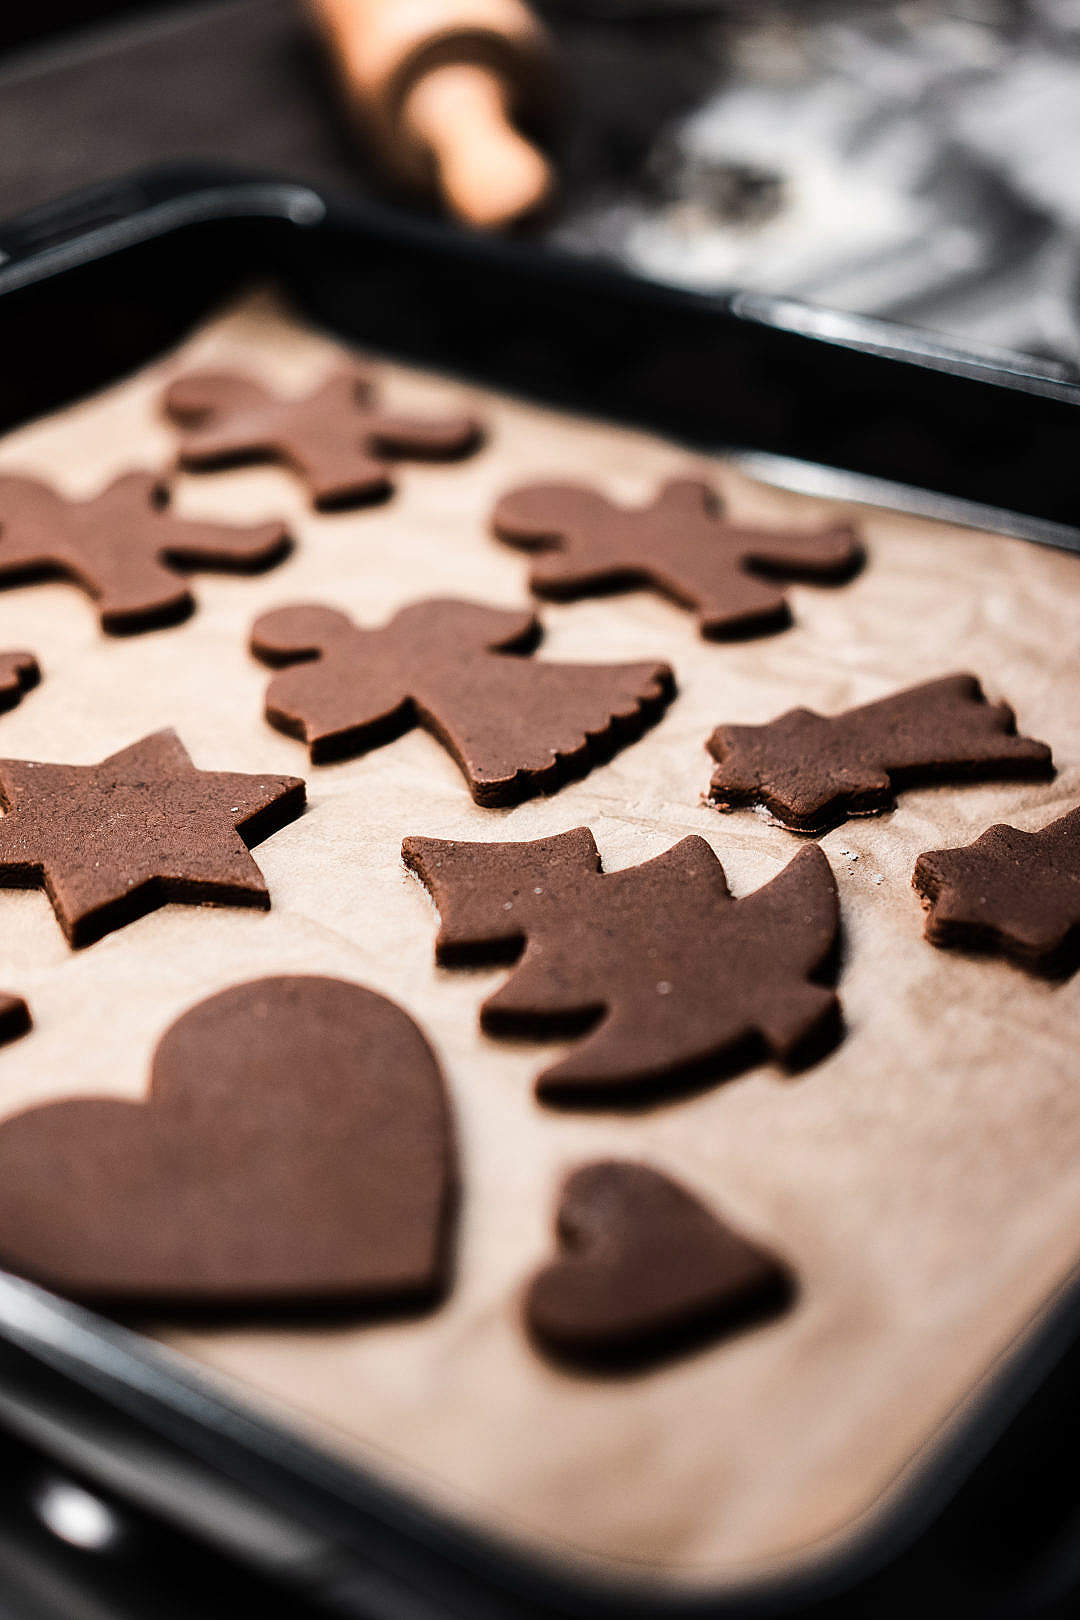 Download Baking Gingerbread Biscuits FREE Stock Photo